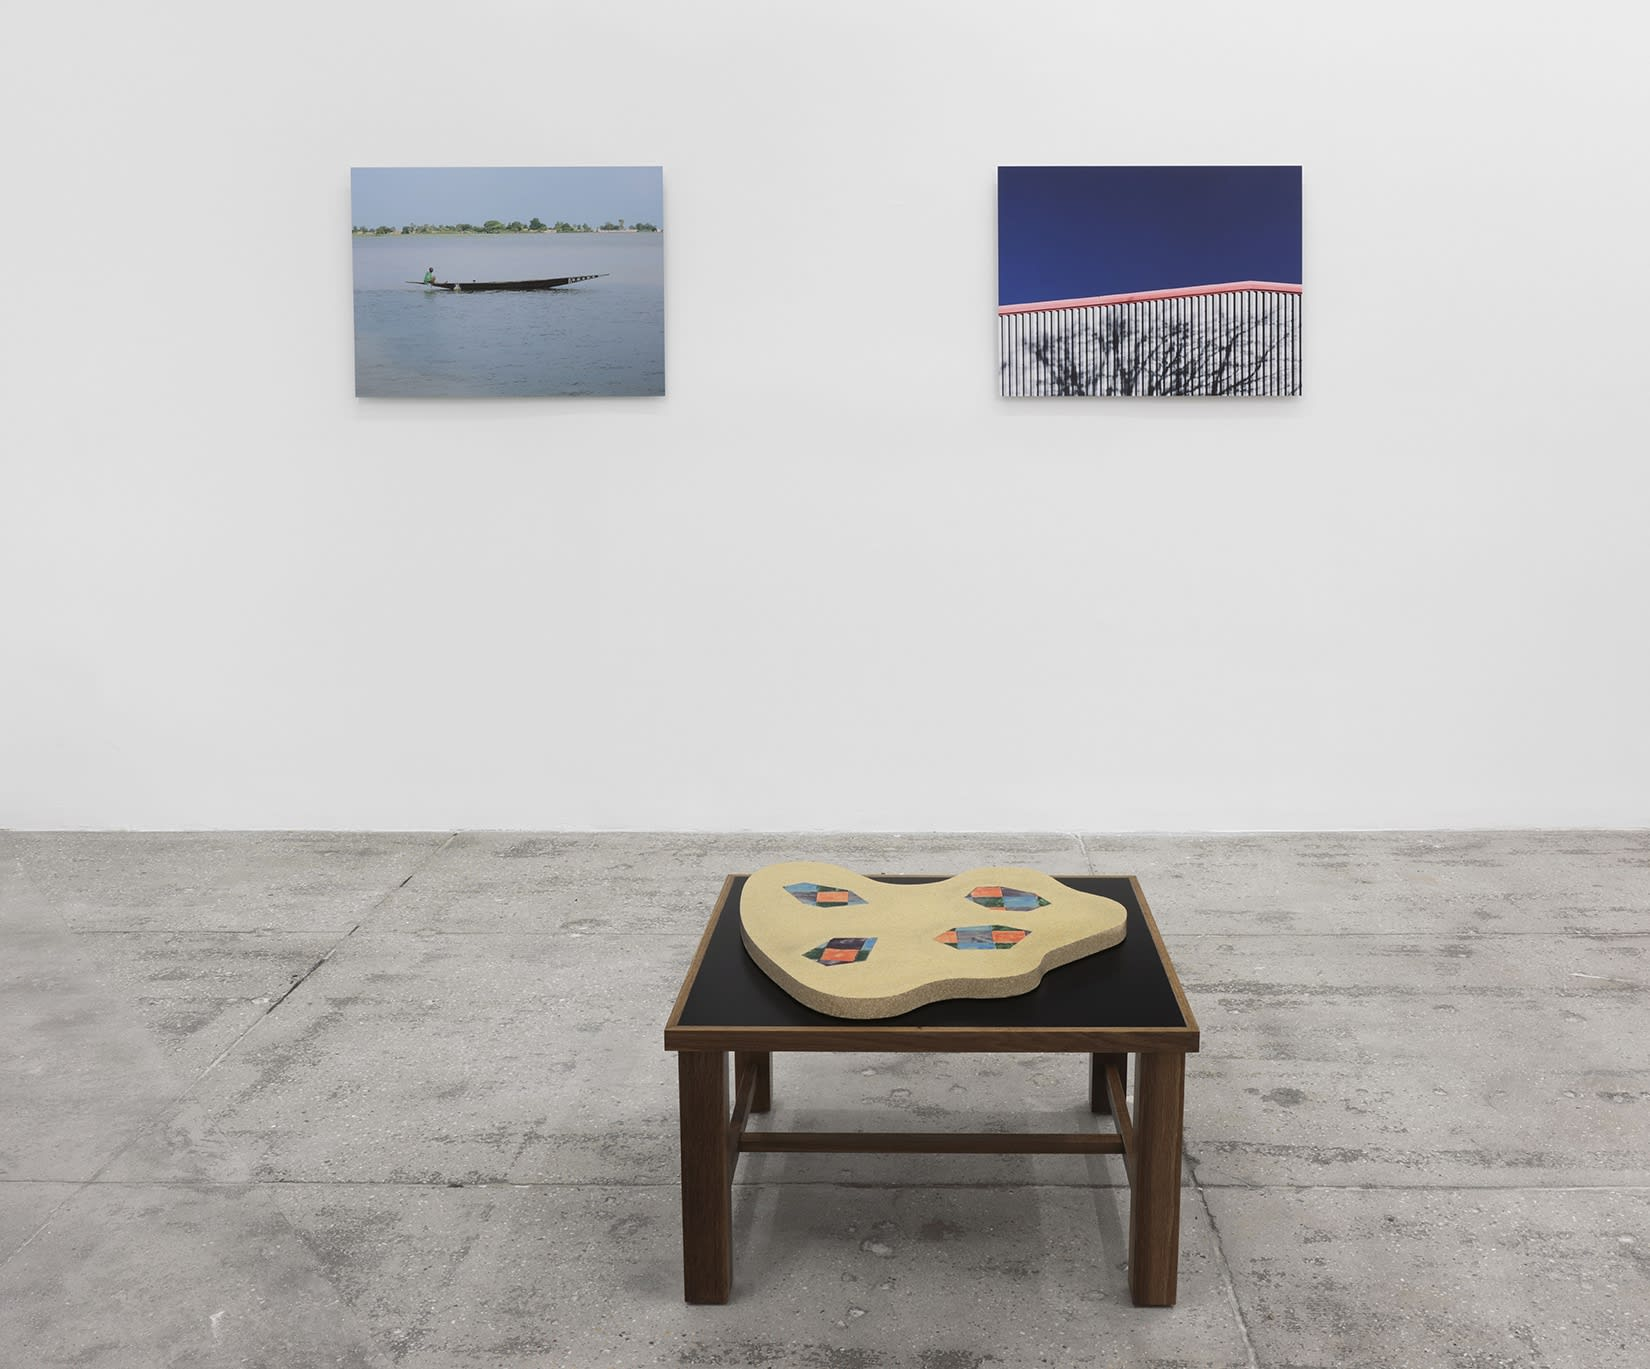 2 photographs hang on a white wall; on the left, a canoe in water and on the right, a roof and sky. A flat sculpture sits on a platform in the foreground.